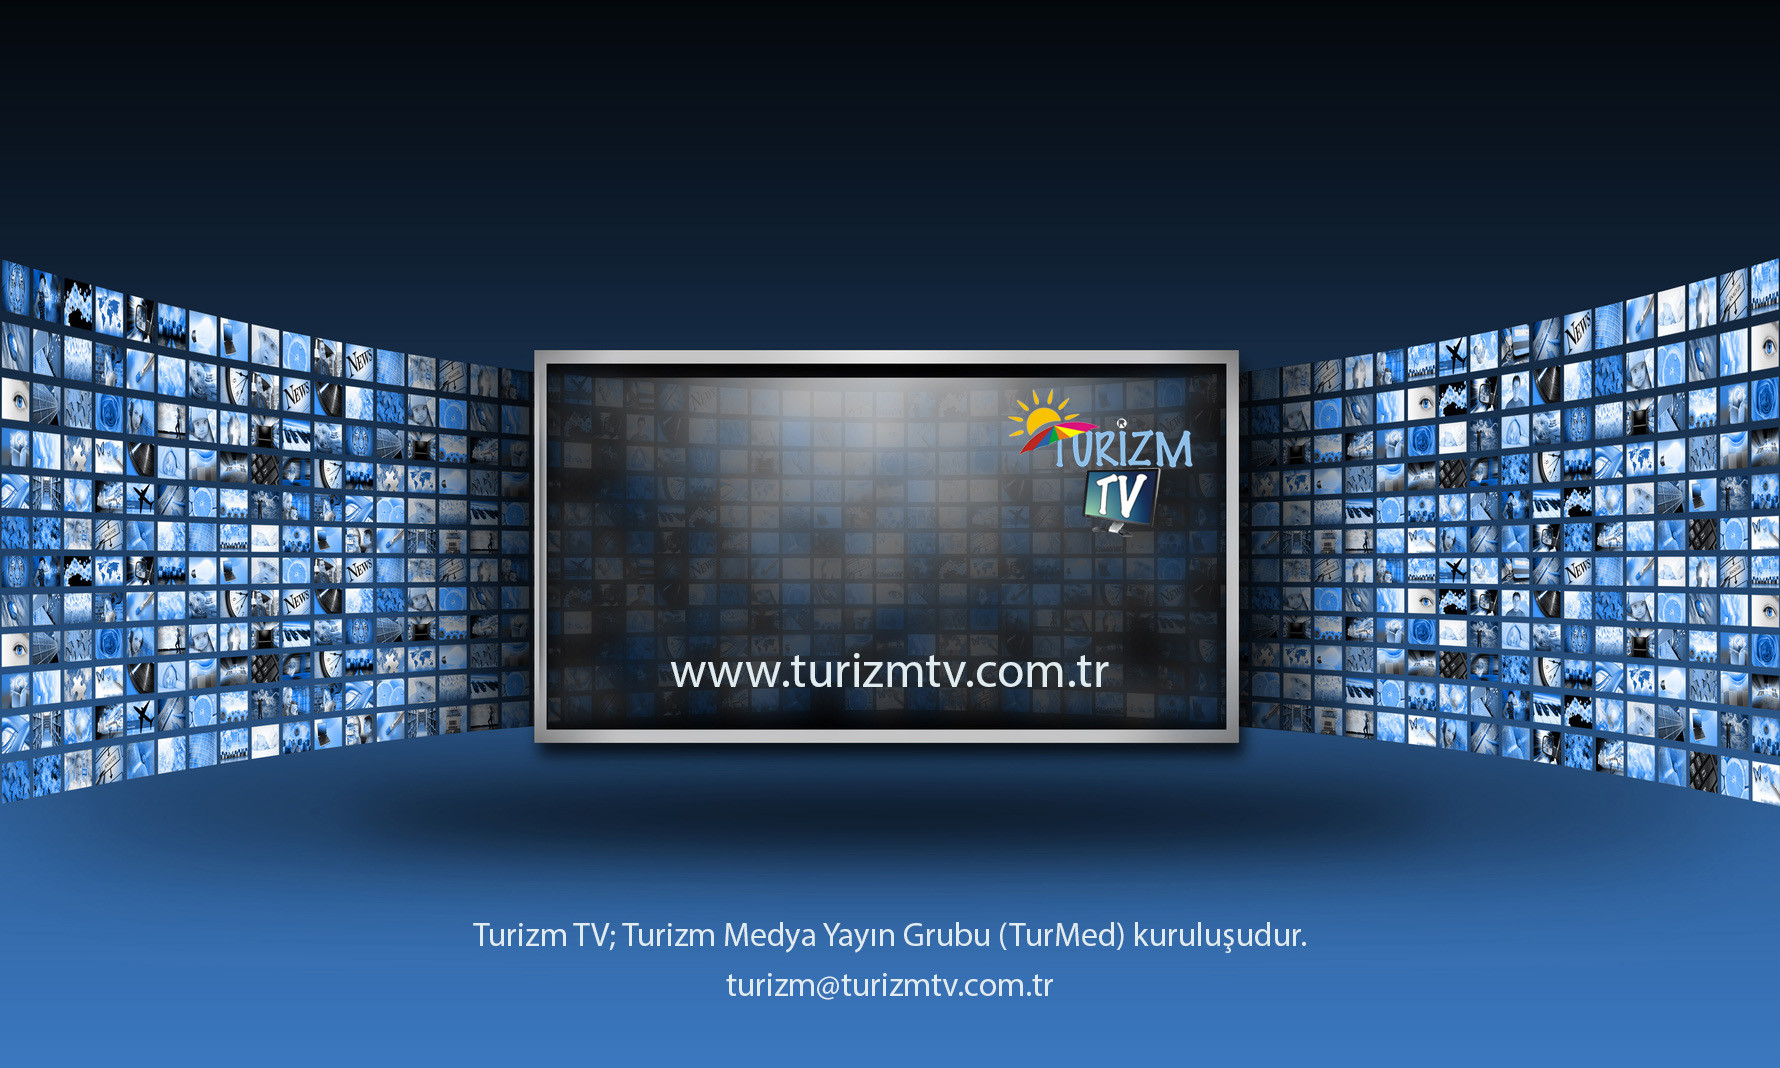 Turkey Official Promotional Video on Turizm TV Tourism TV Tur TV